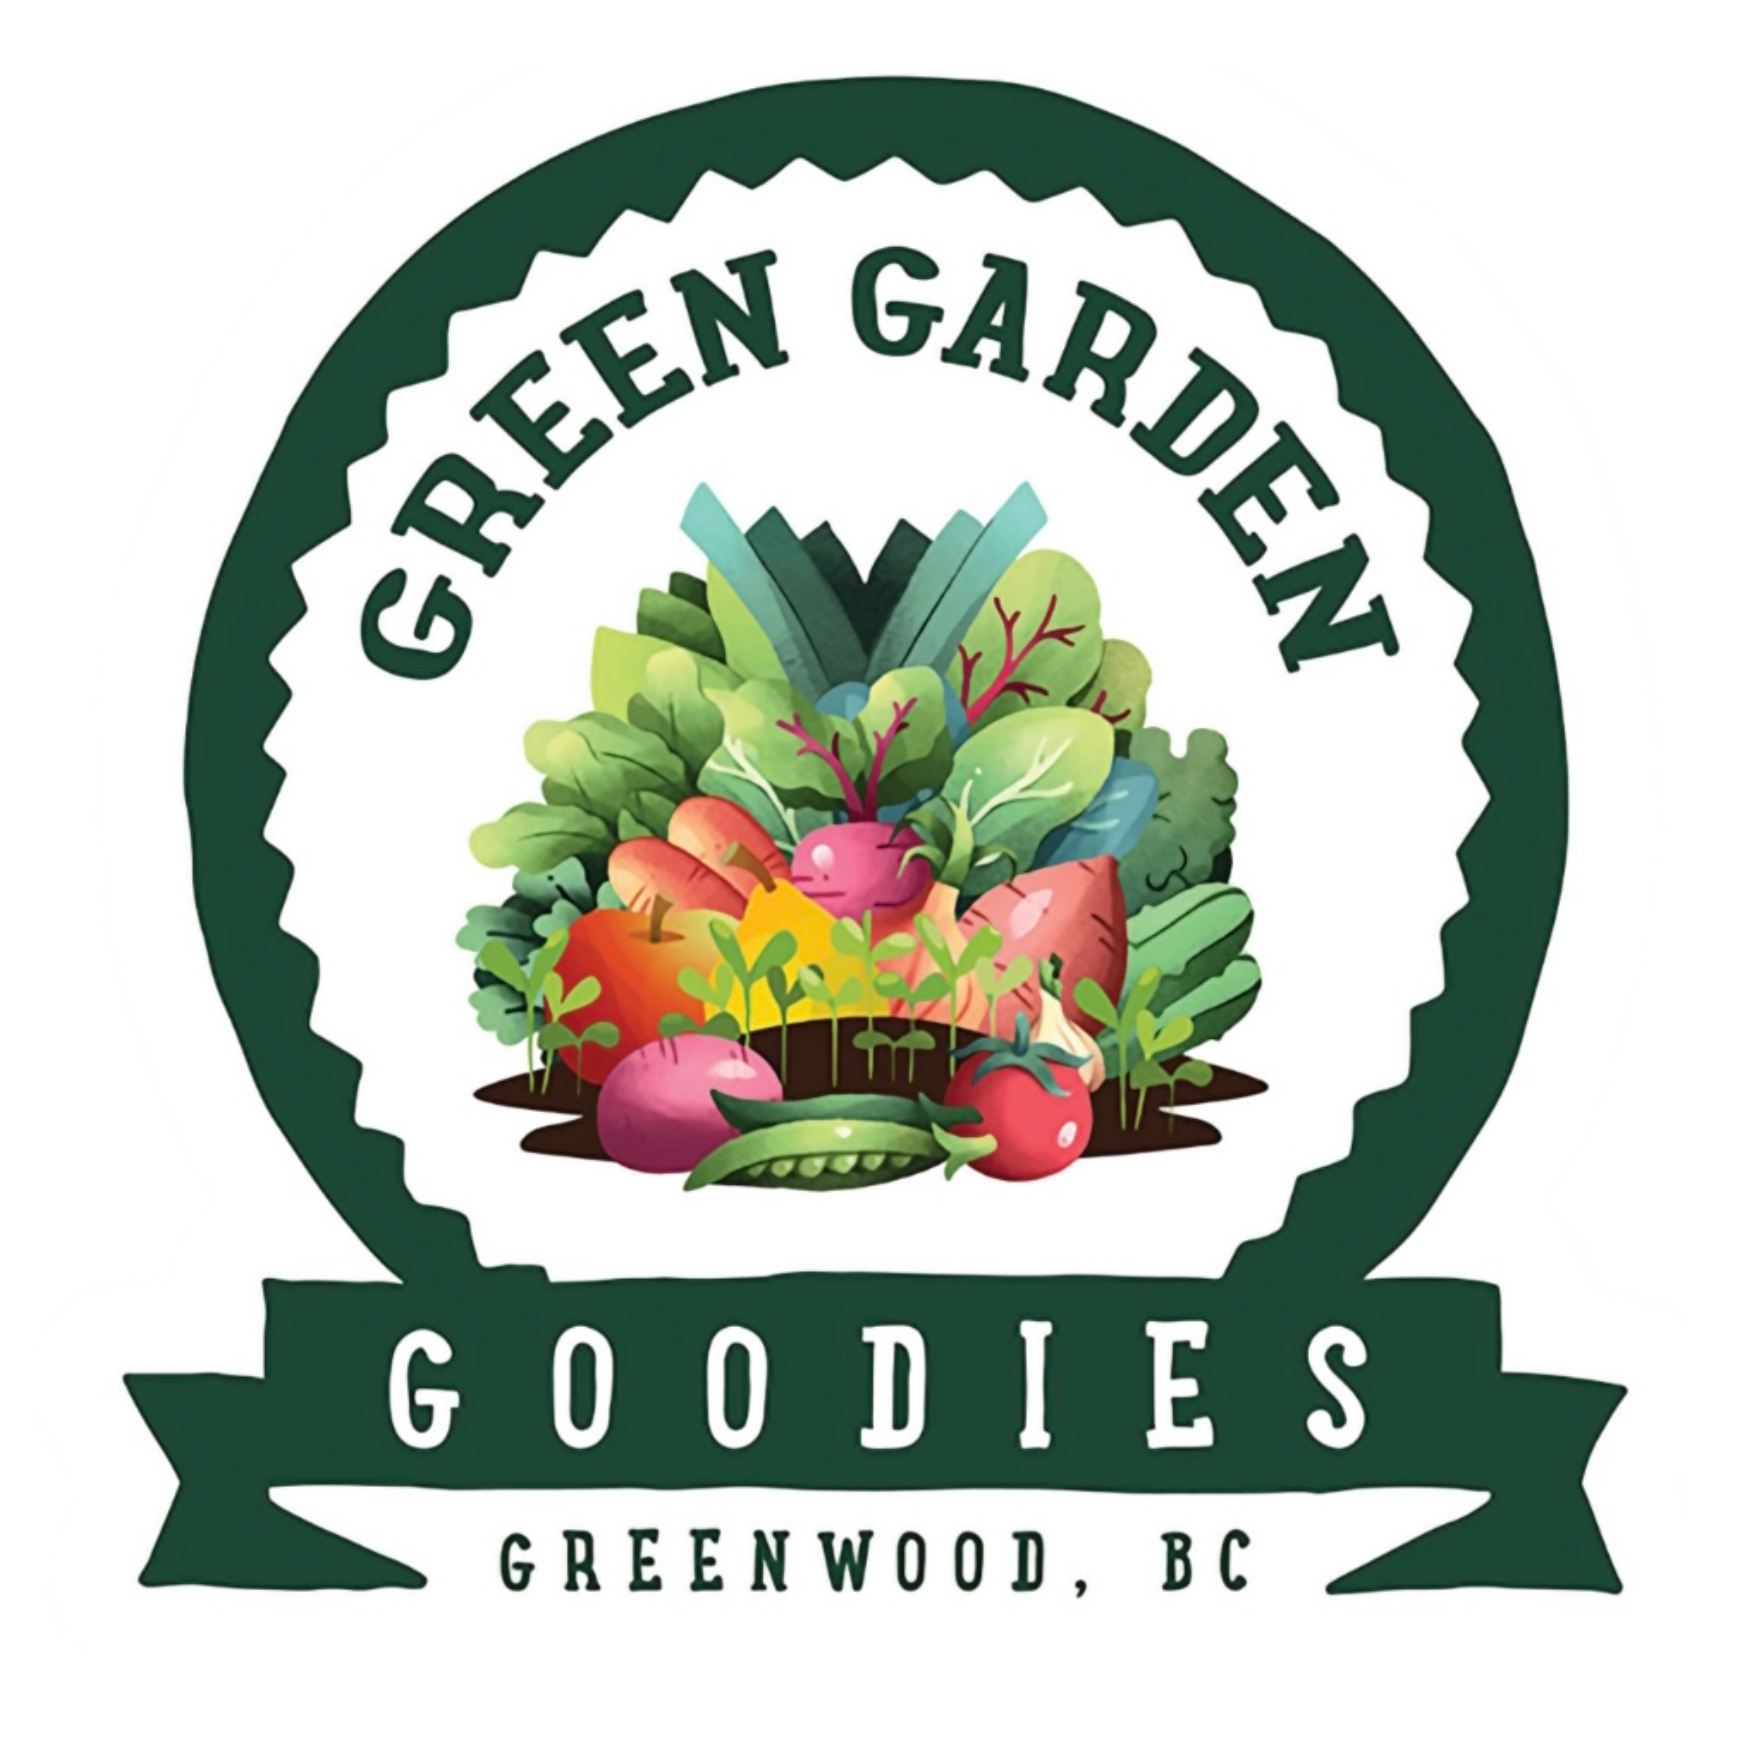 Greenwood Garden Goodies by Alison